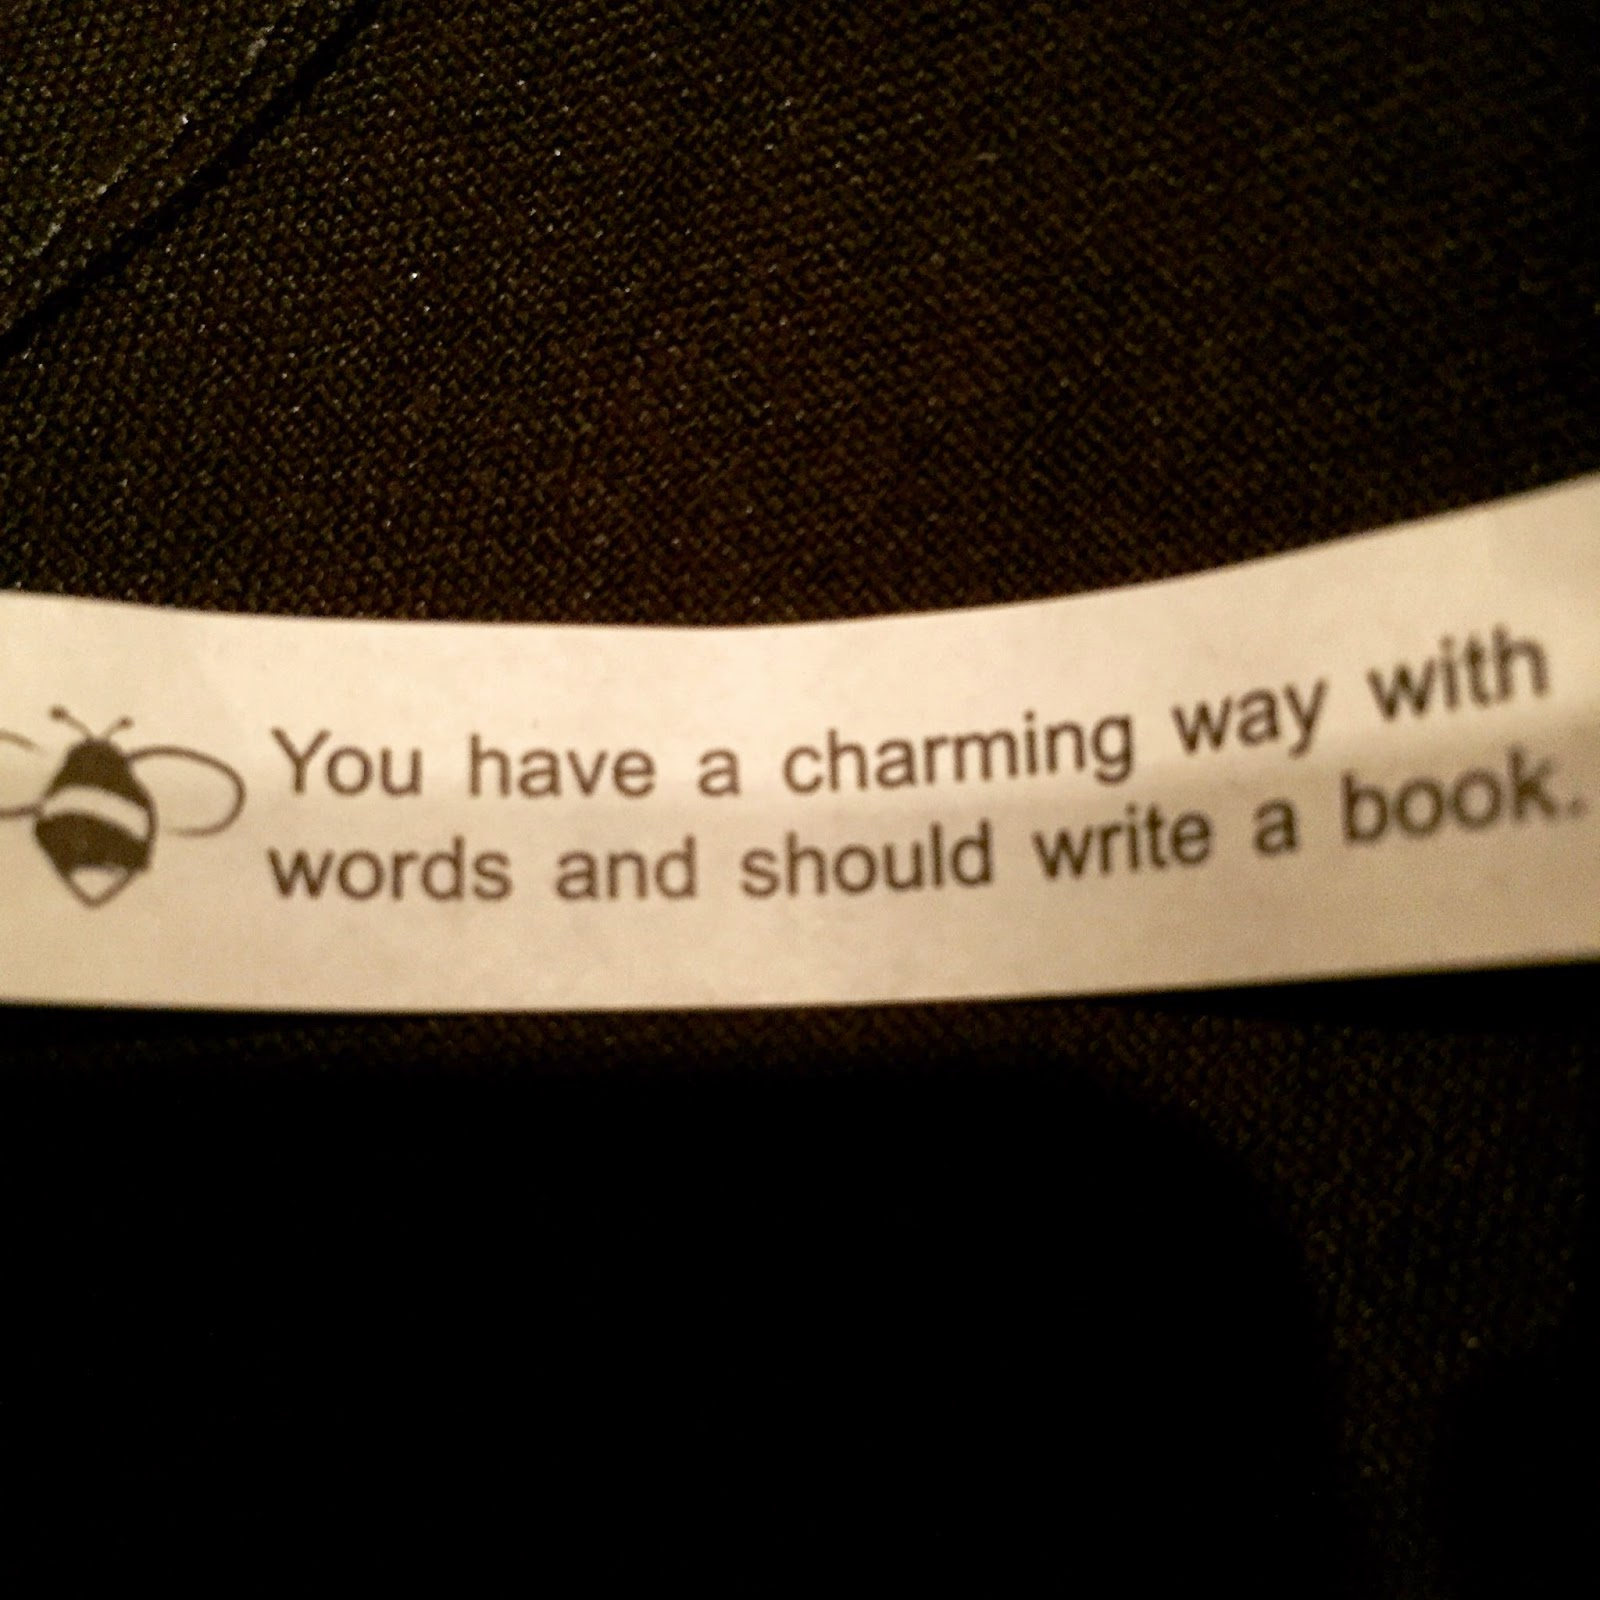 fortune cookie advice about writing a book